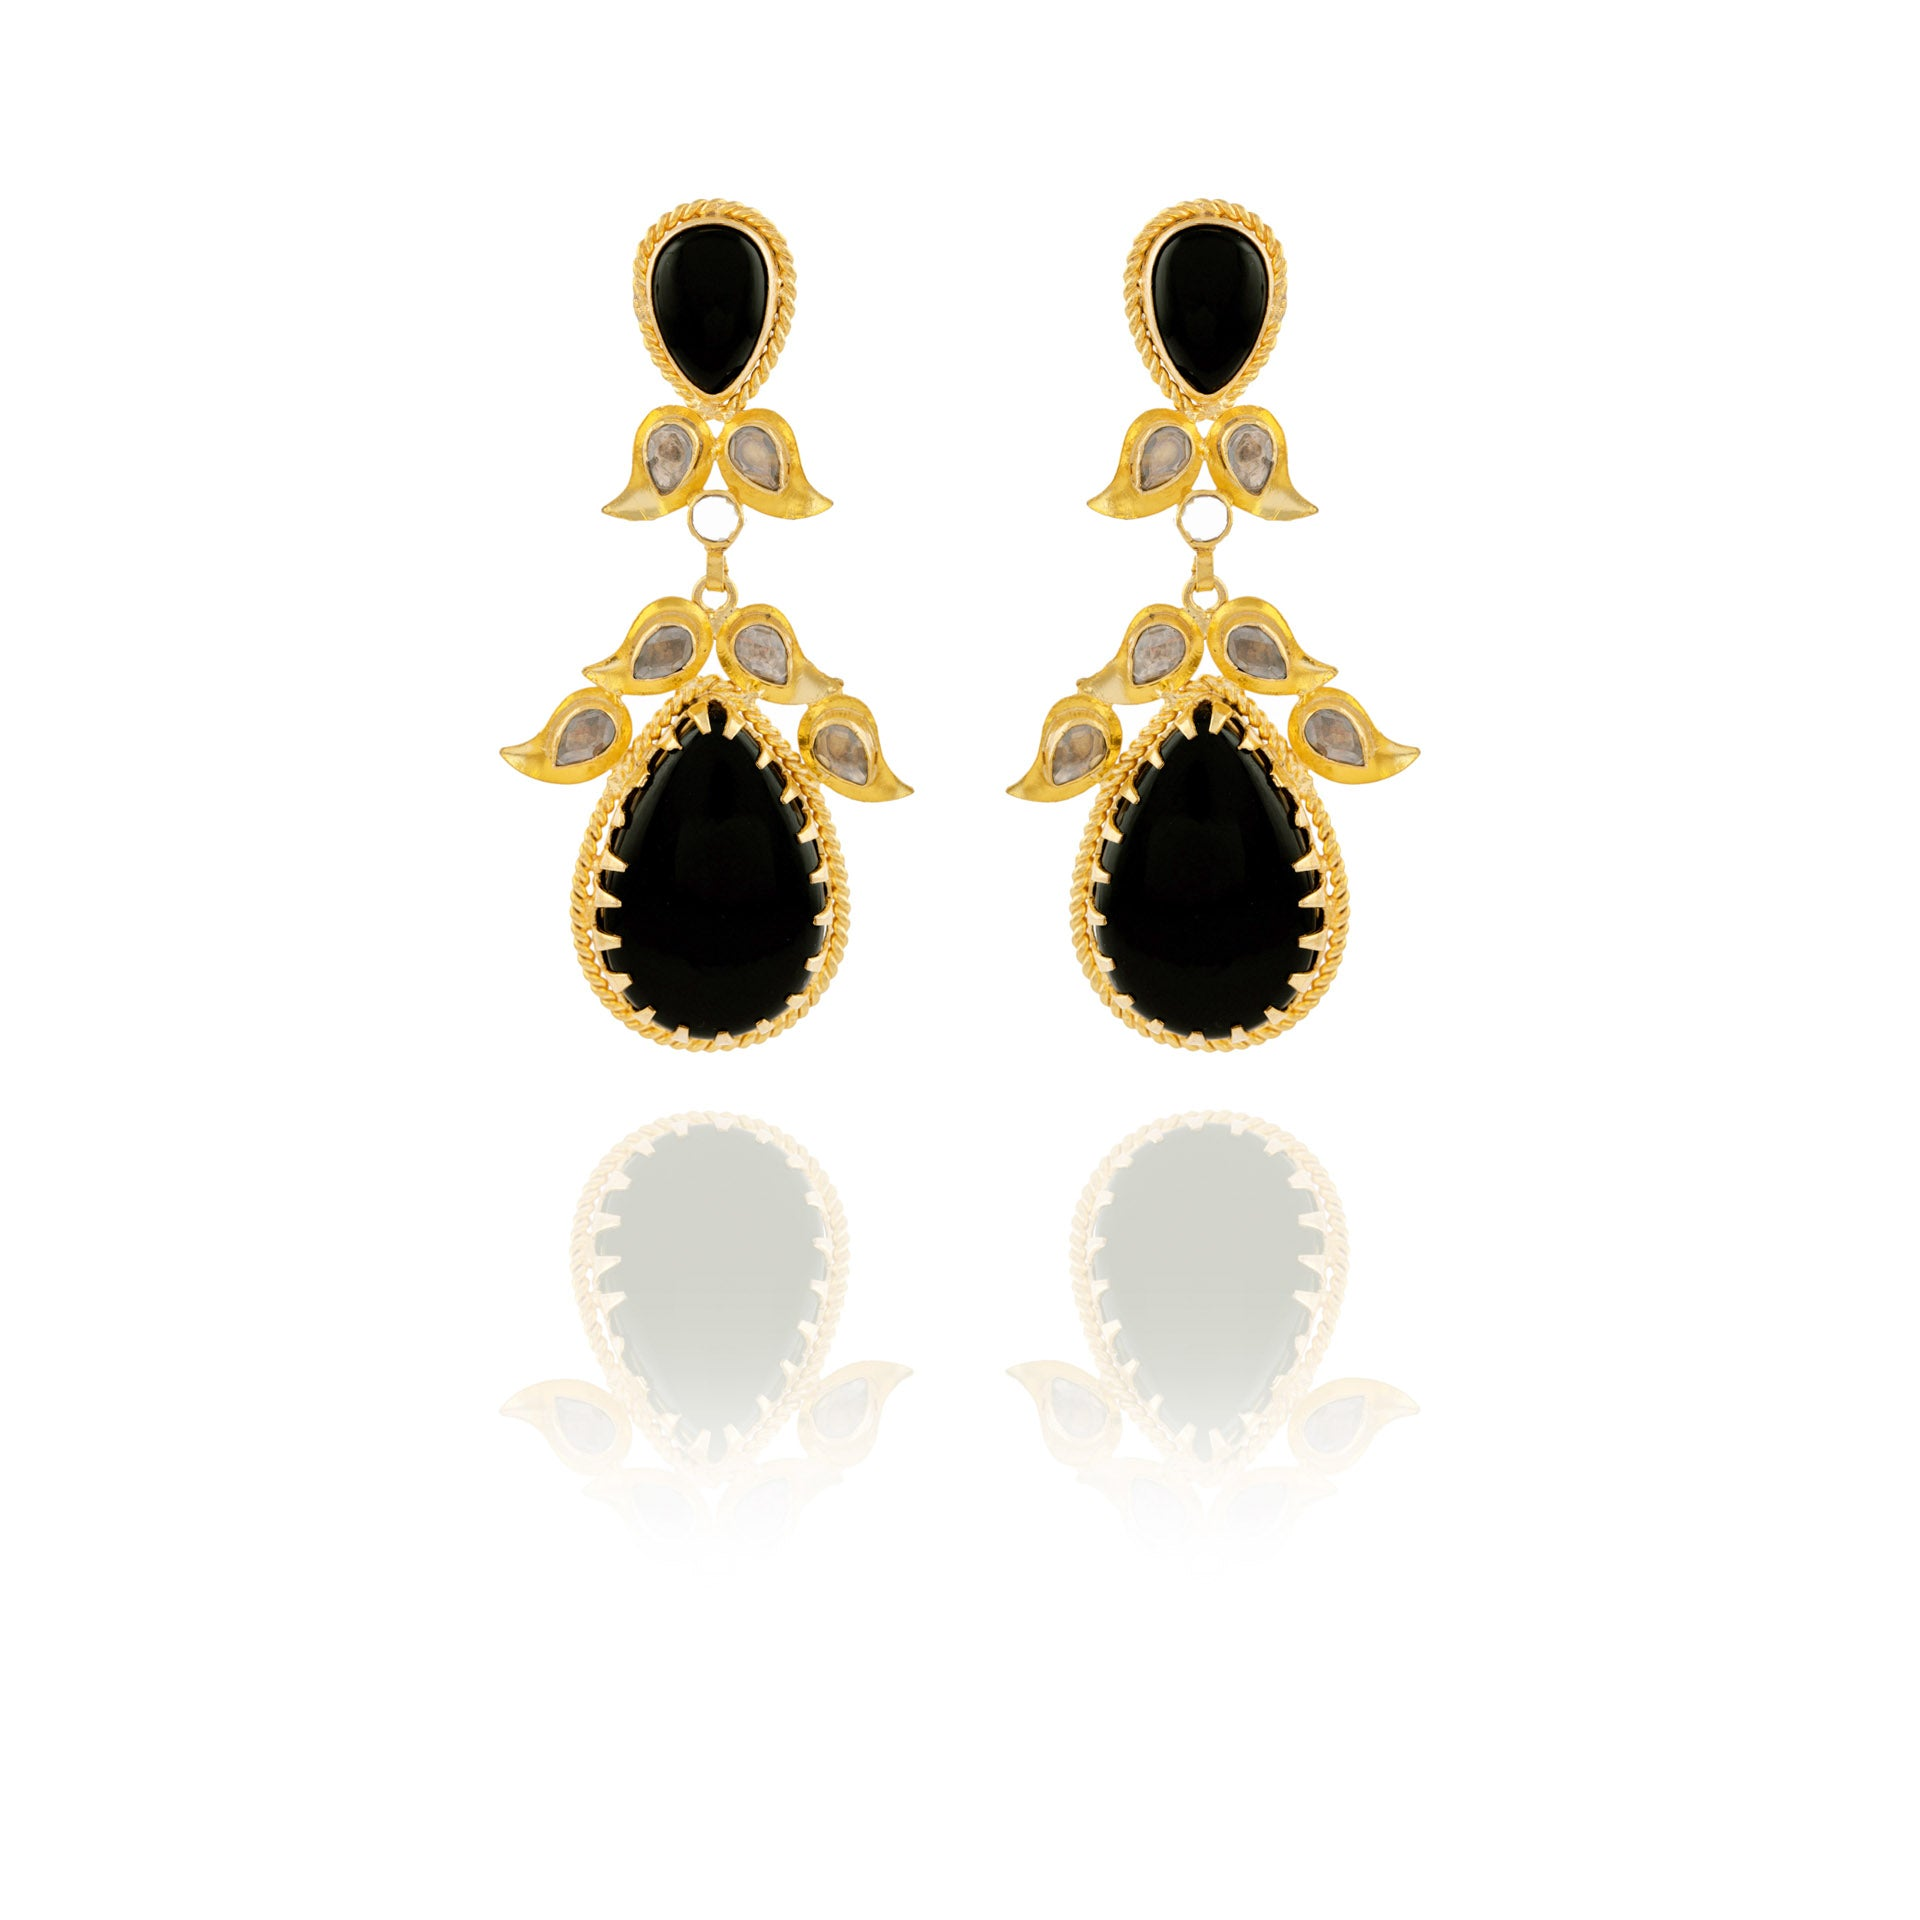 Bold and Iconic Black Drop Long Earrings